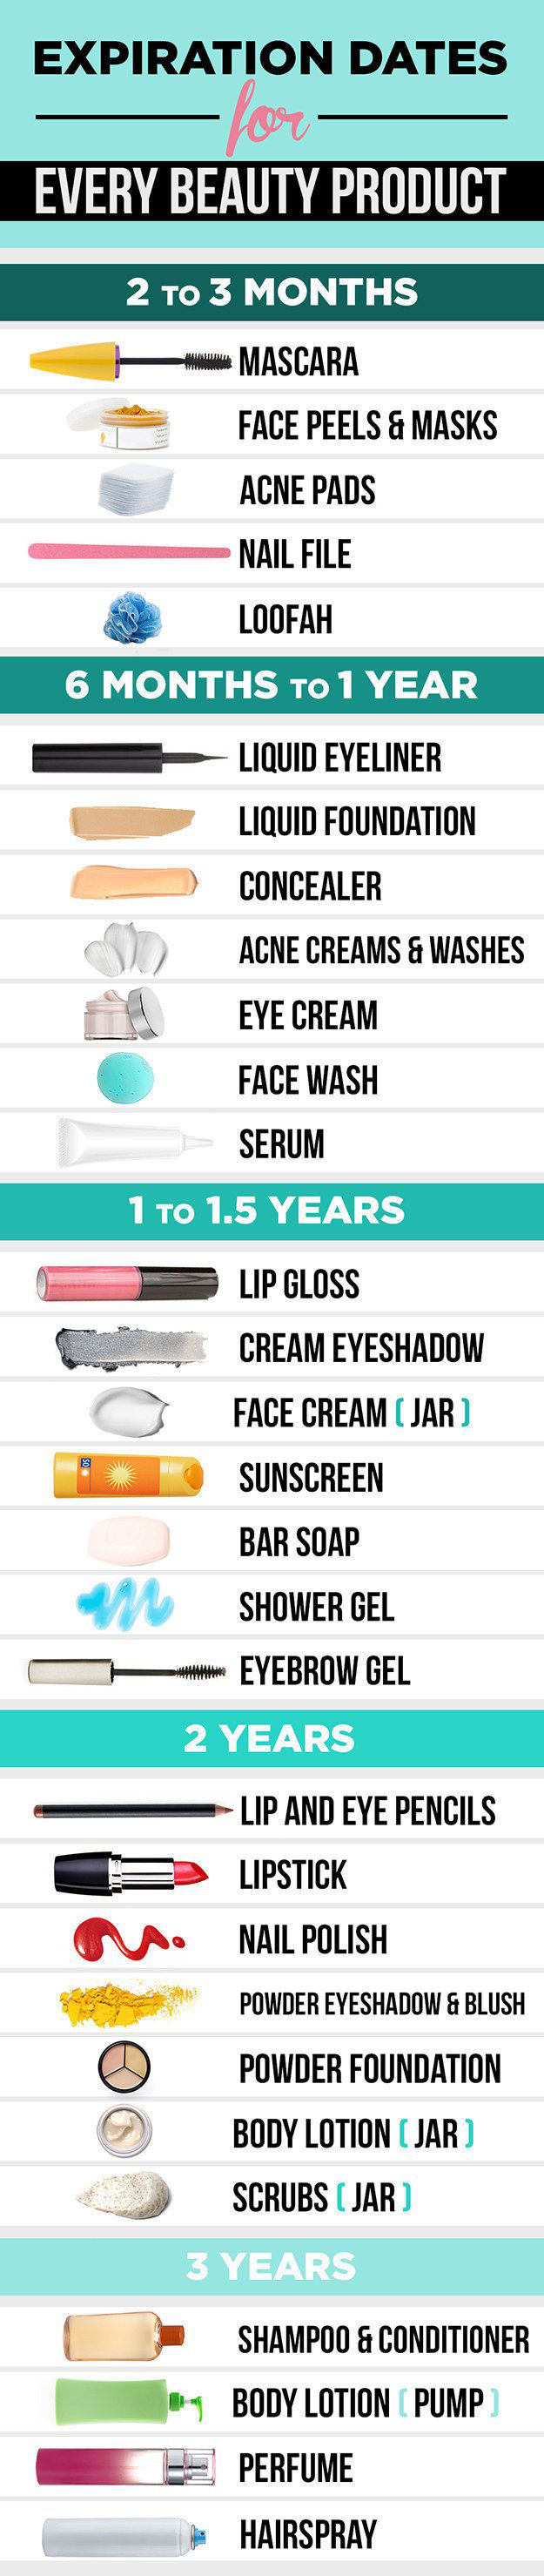 Throw out old products. | 17 Beauty Resolutions You Should Definitely Make This Year